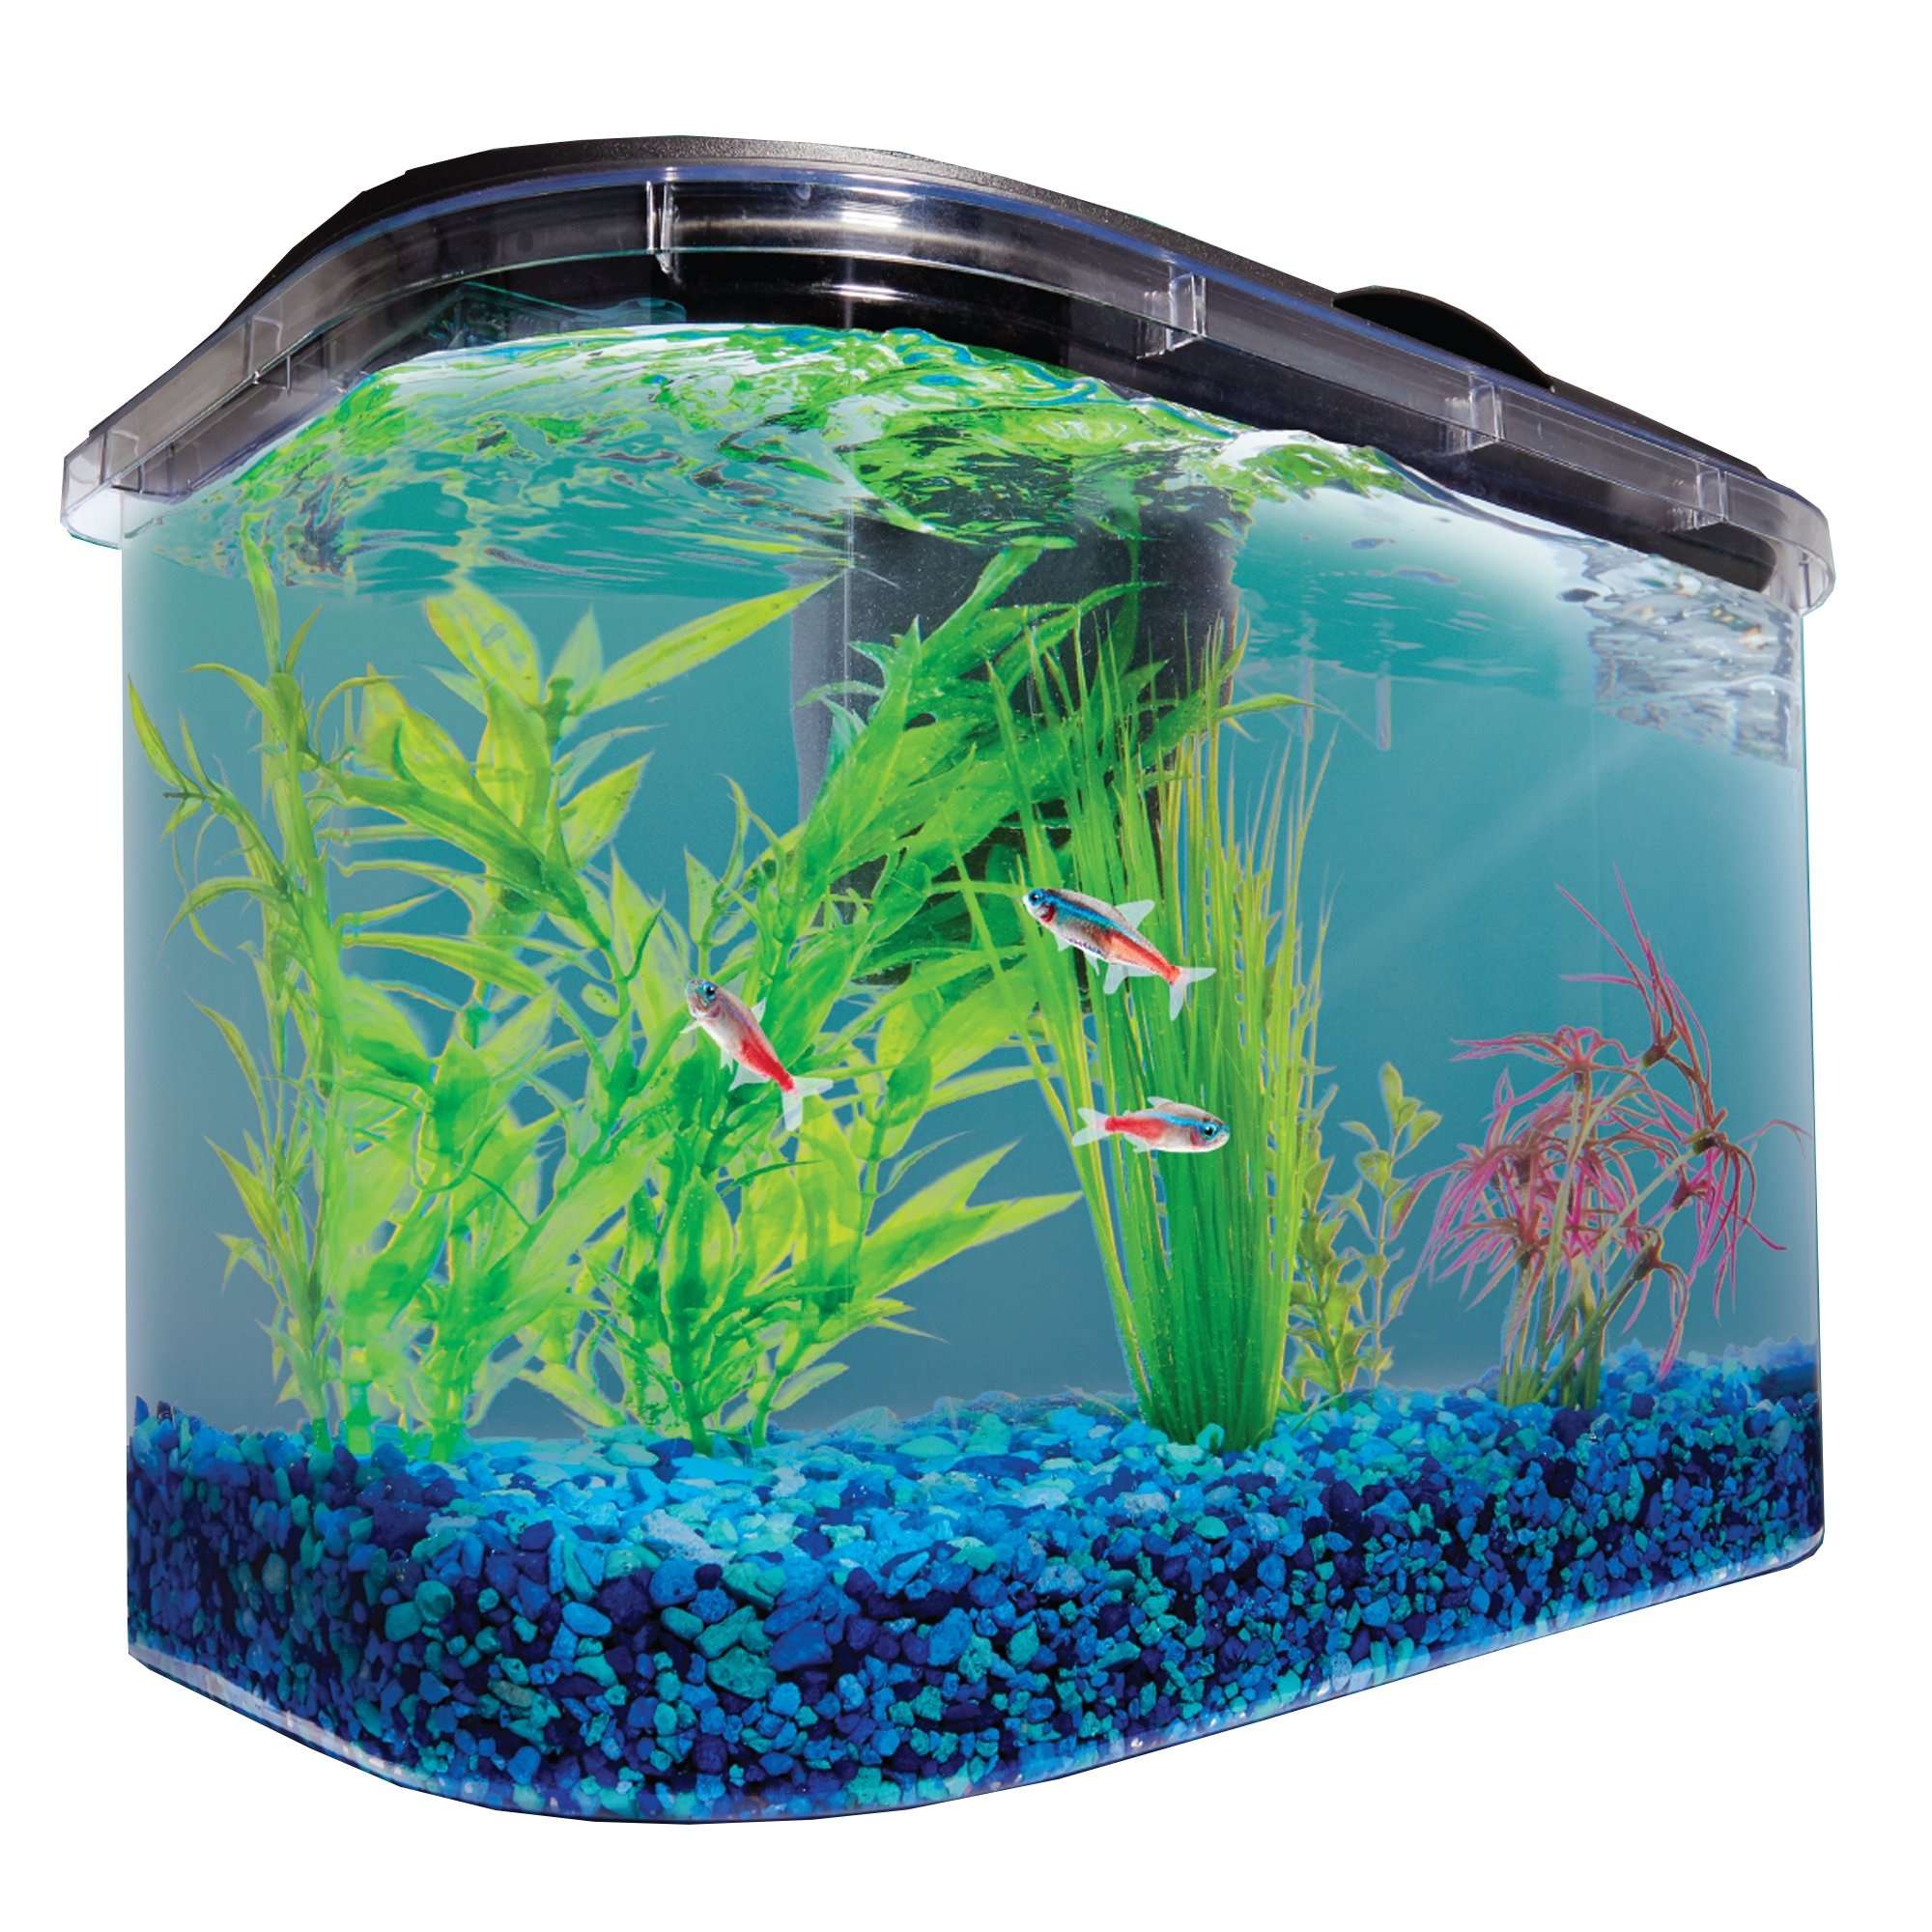 gallon fish culture feeder aquarium l com reviews h w tank for aqua automatic food walmart product x